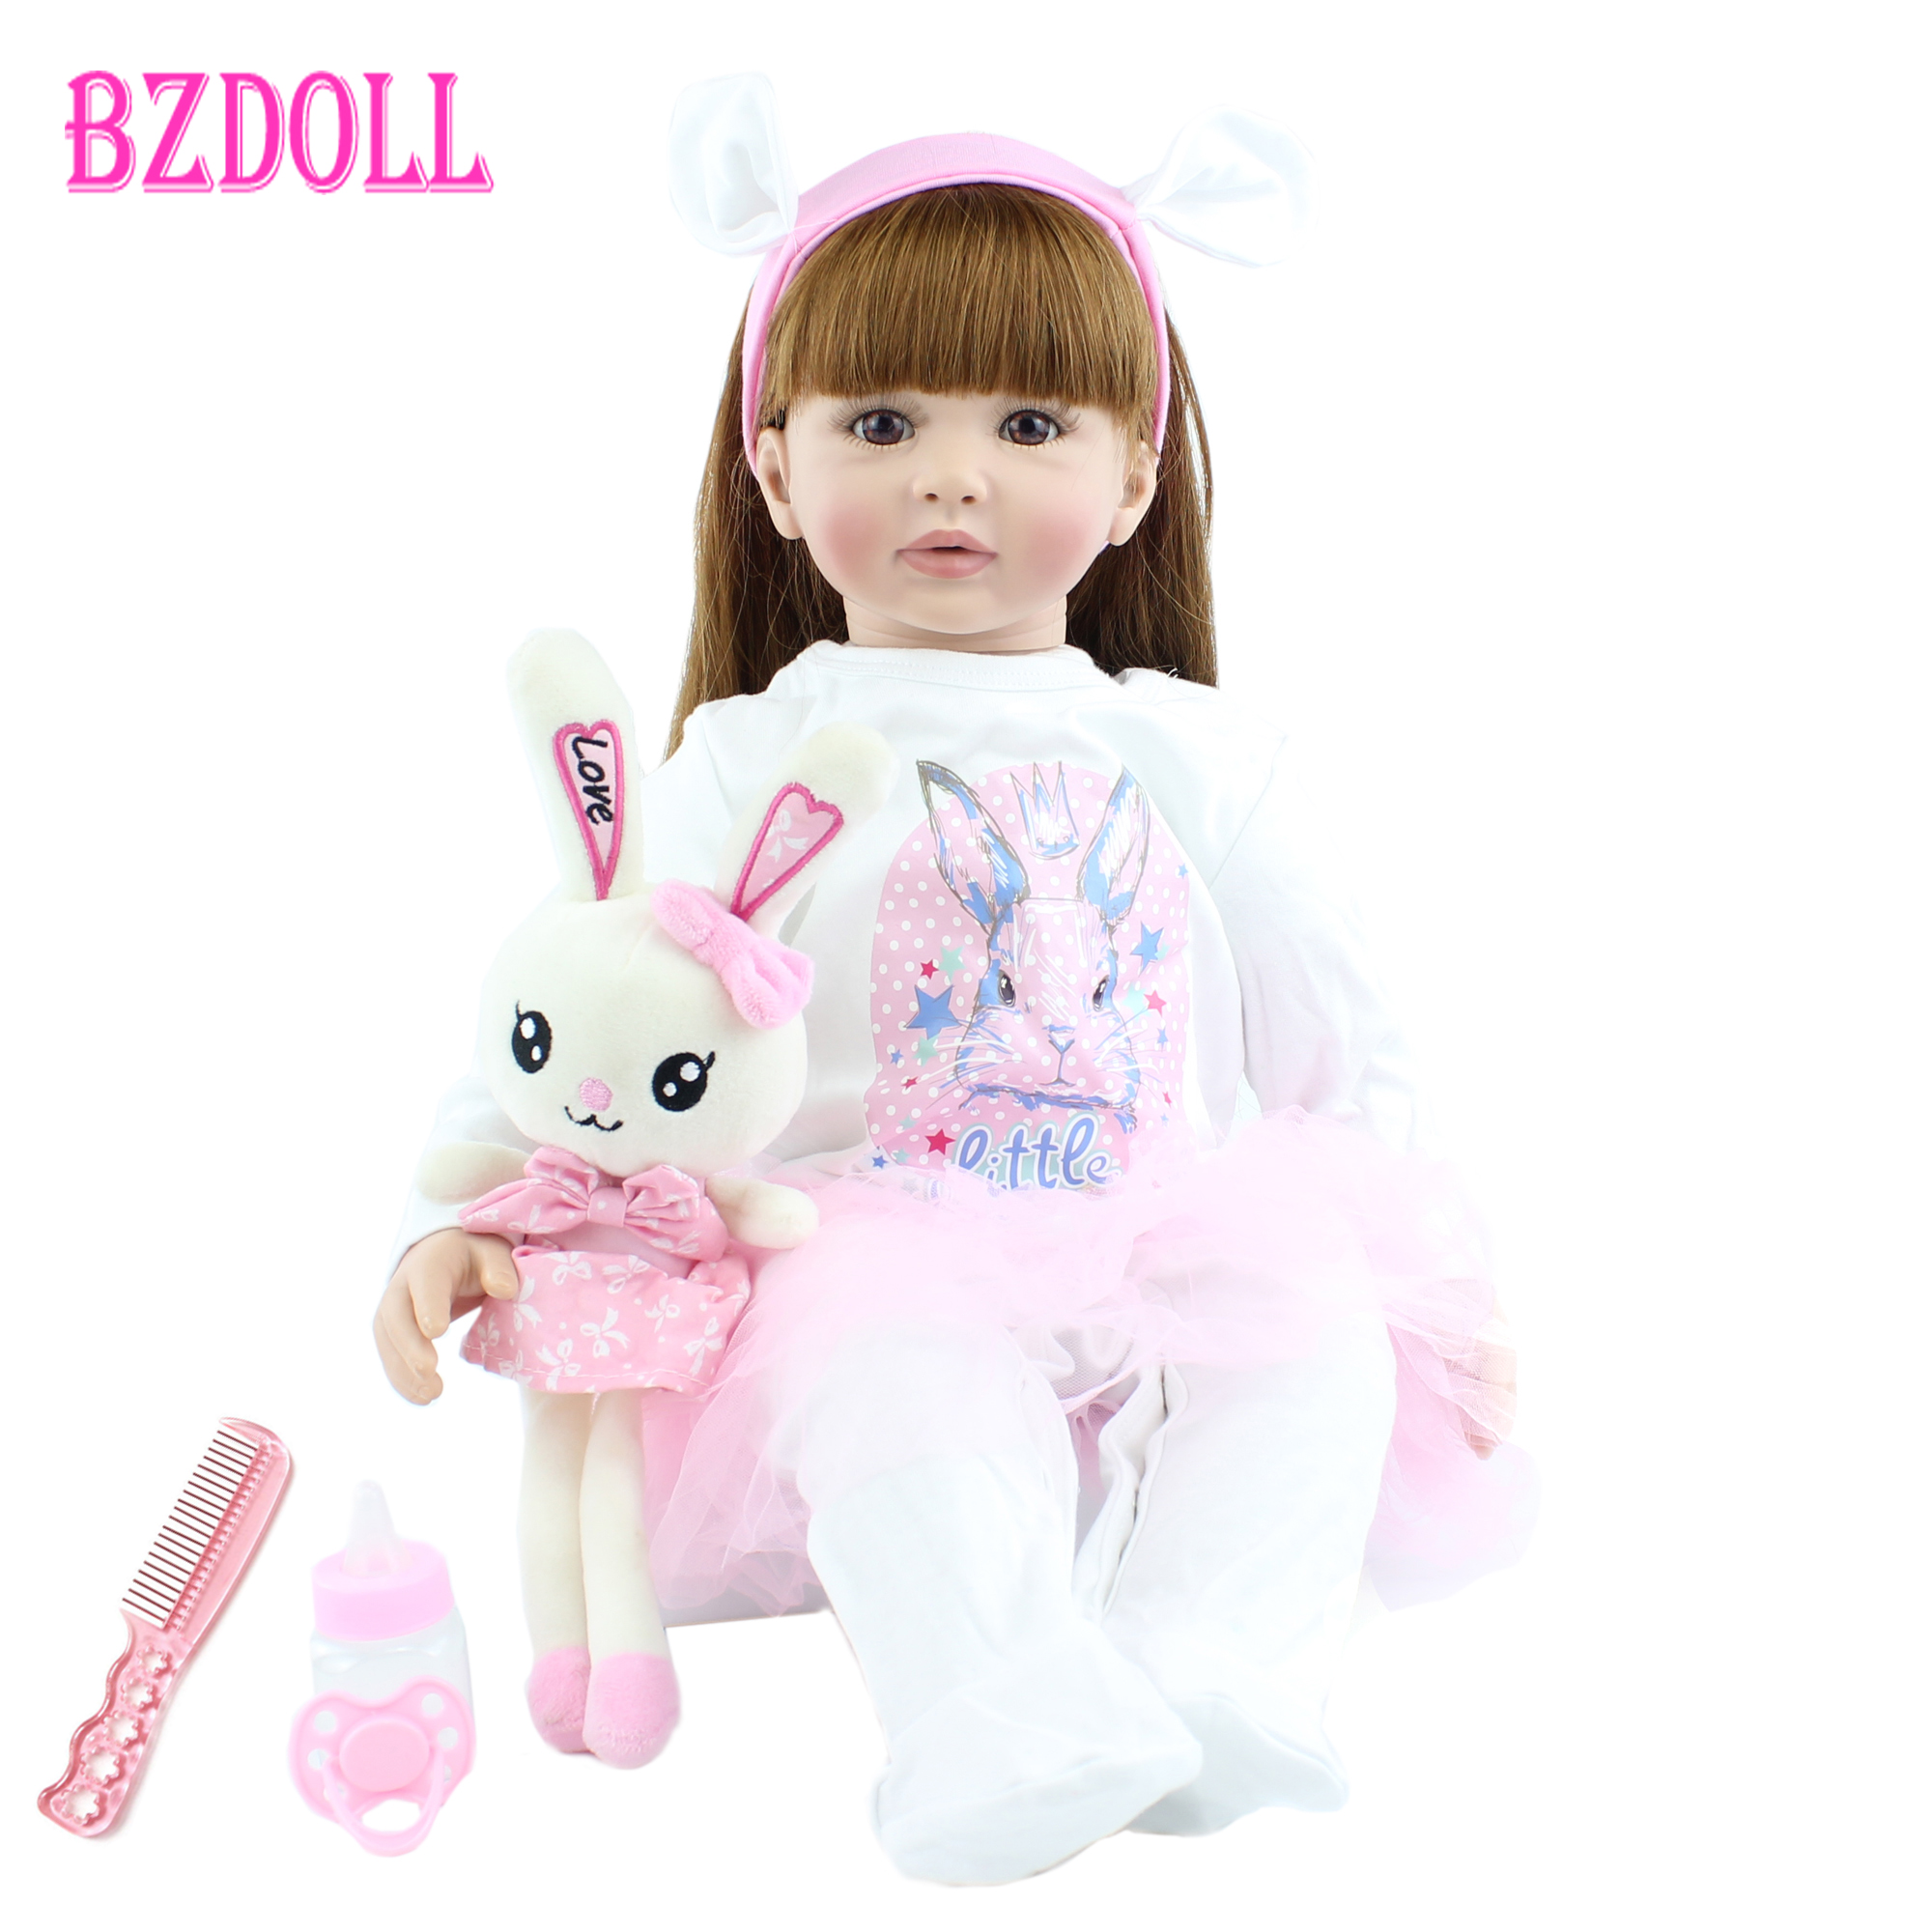 60cm Soft Silicone Reborn Toddler Baby Girl Doll Toys Lifelike Vinyl Long Hair Princess Alive Bebe Dress Up Doll With Rabbit